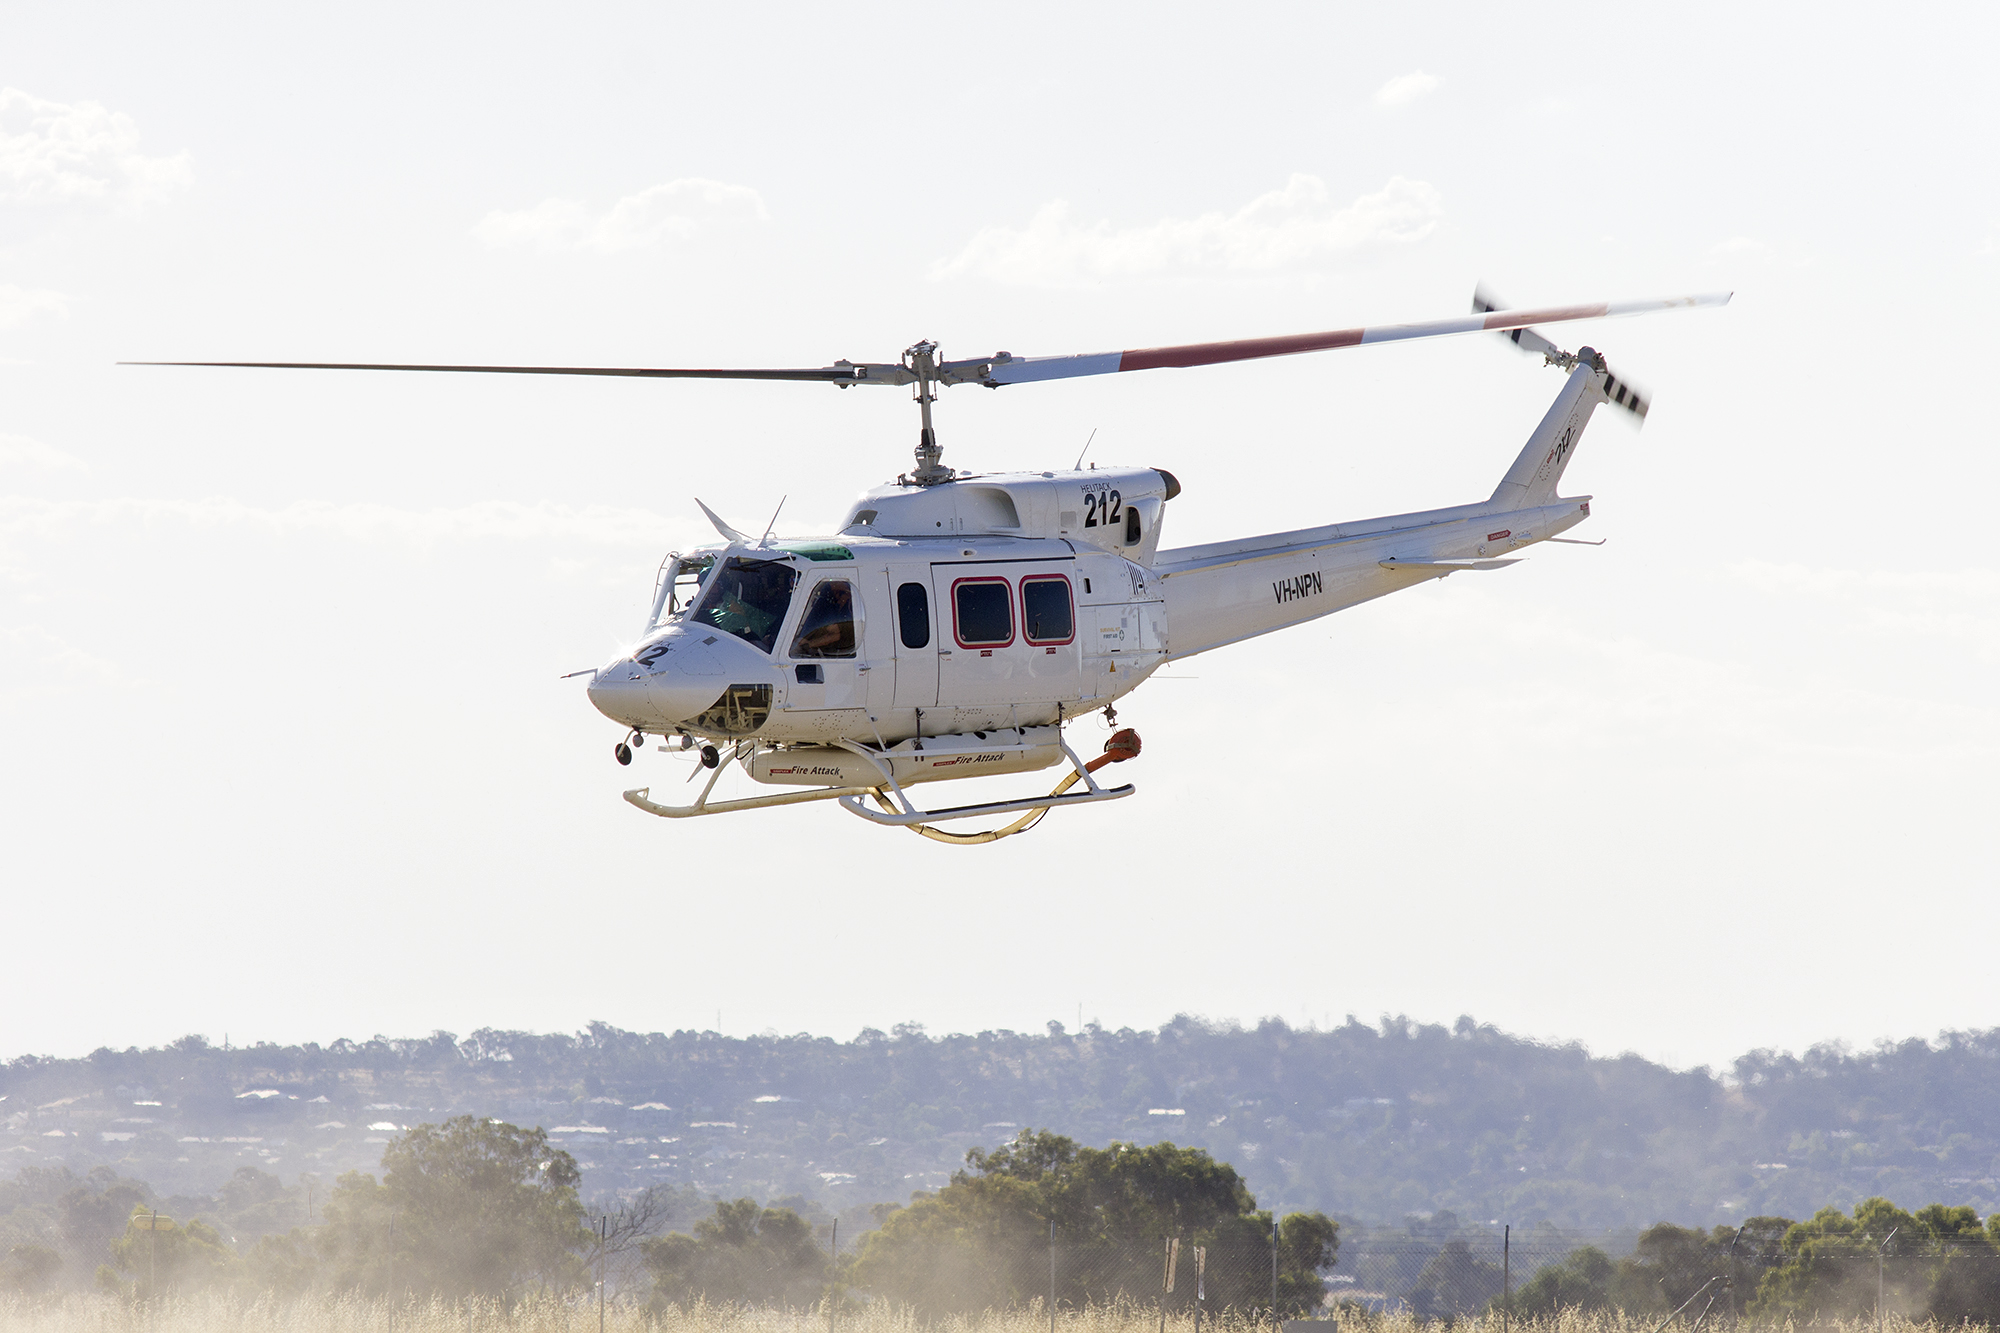 File:Commercial Helicopters (VH-NPN) Bell 212 departing Wagga Wagga Airport  (